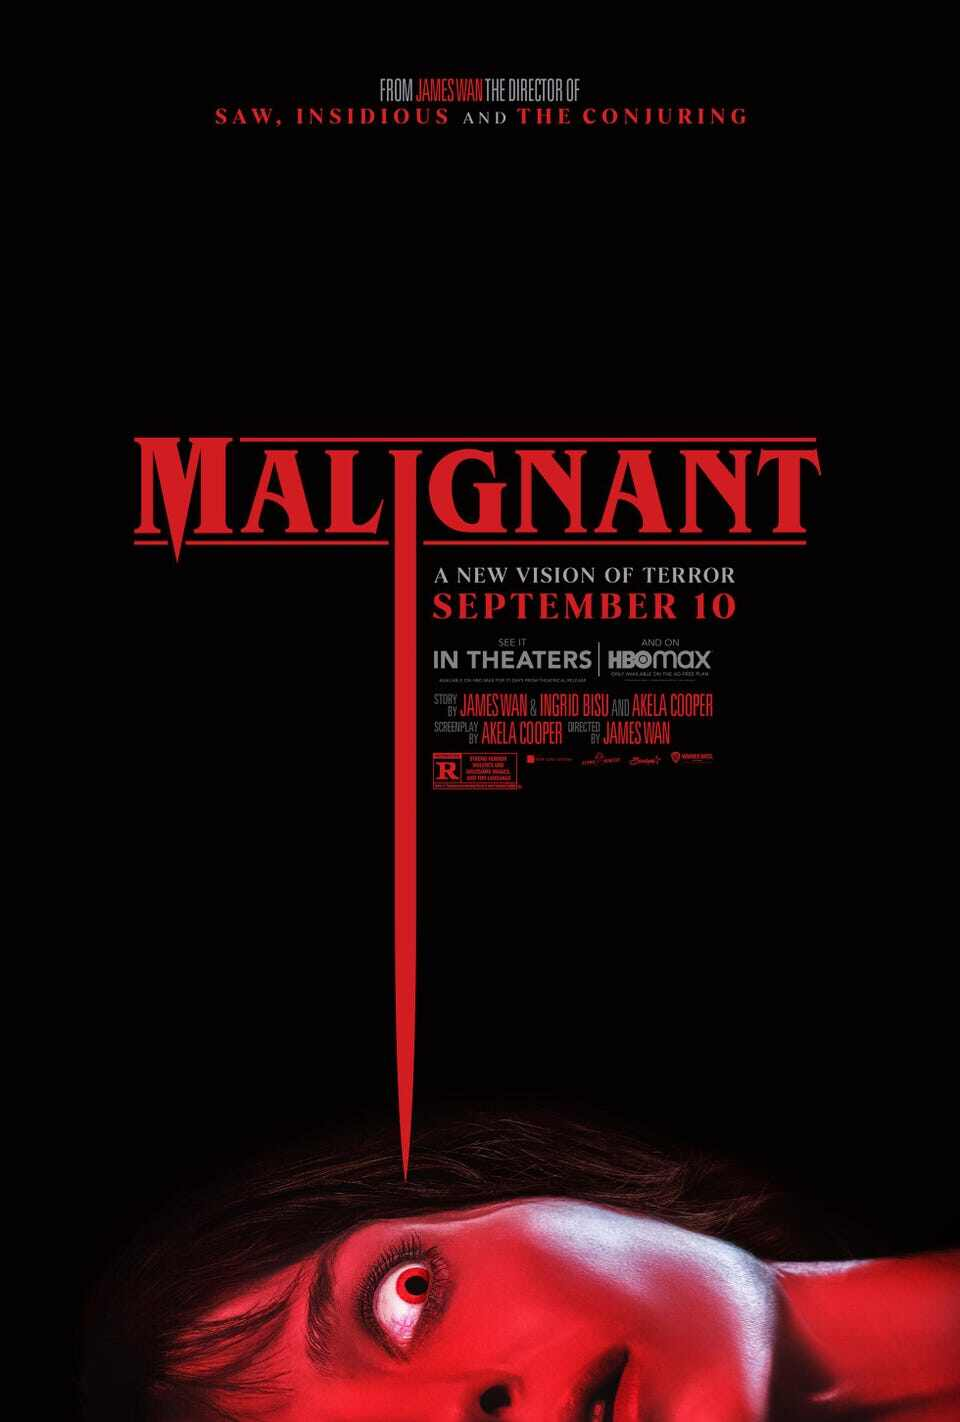 'Malignant' WARNER BROS. AND NEW LINE